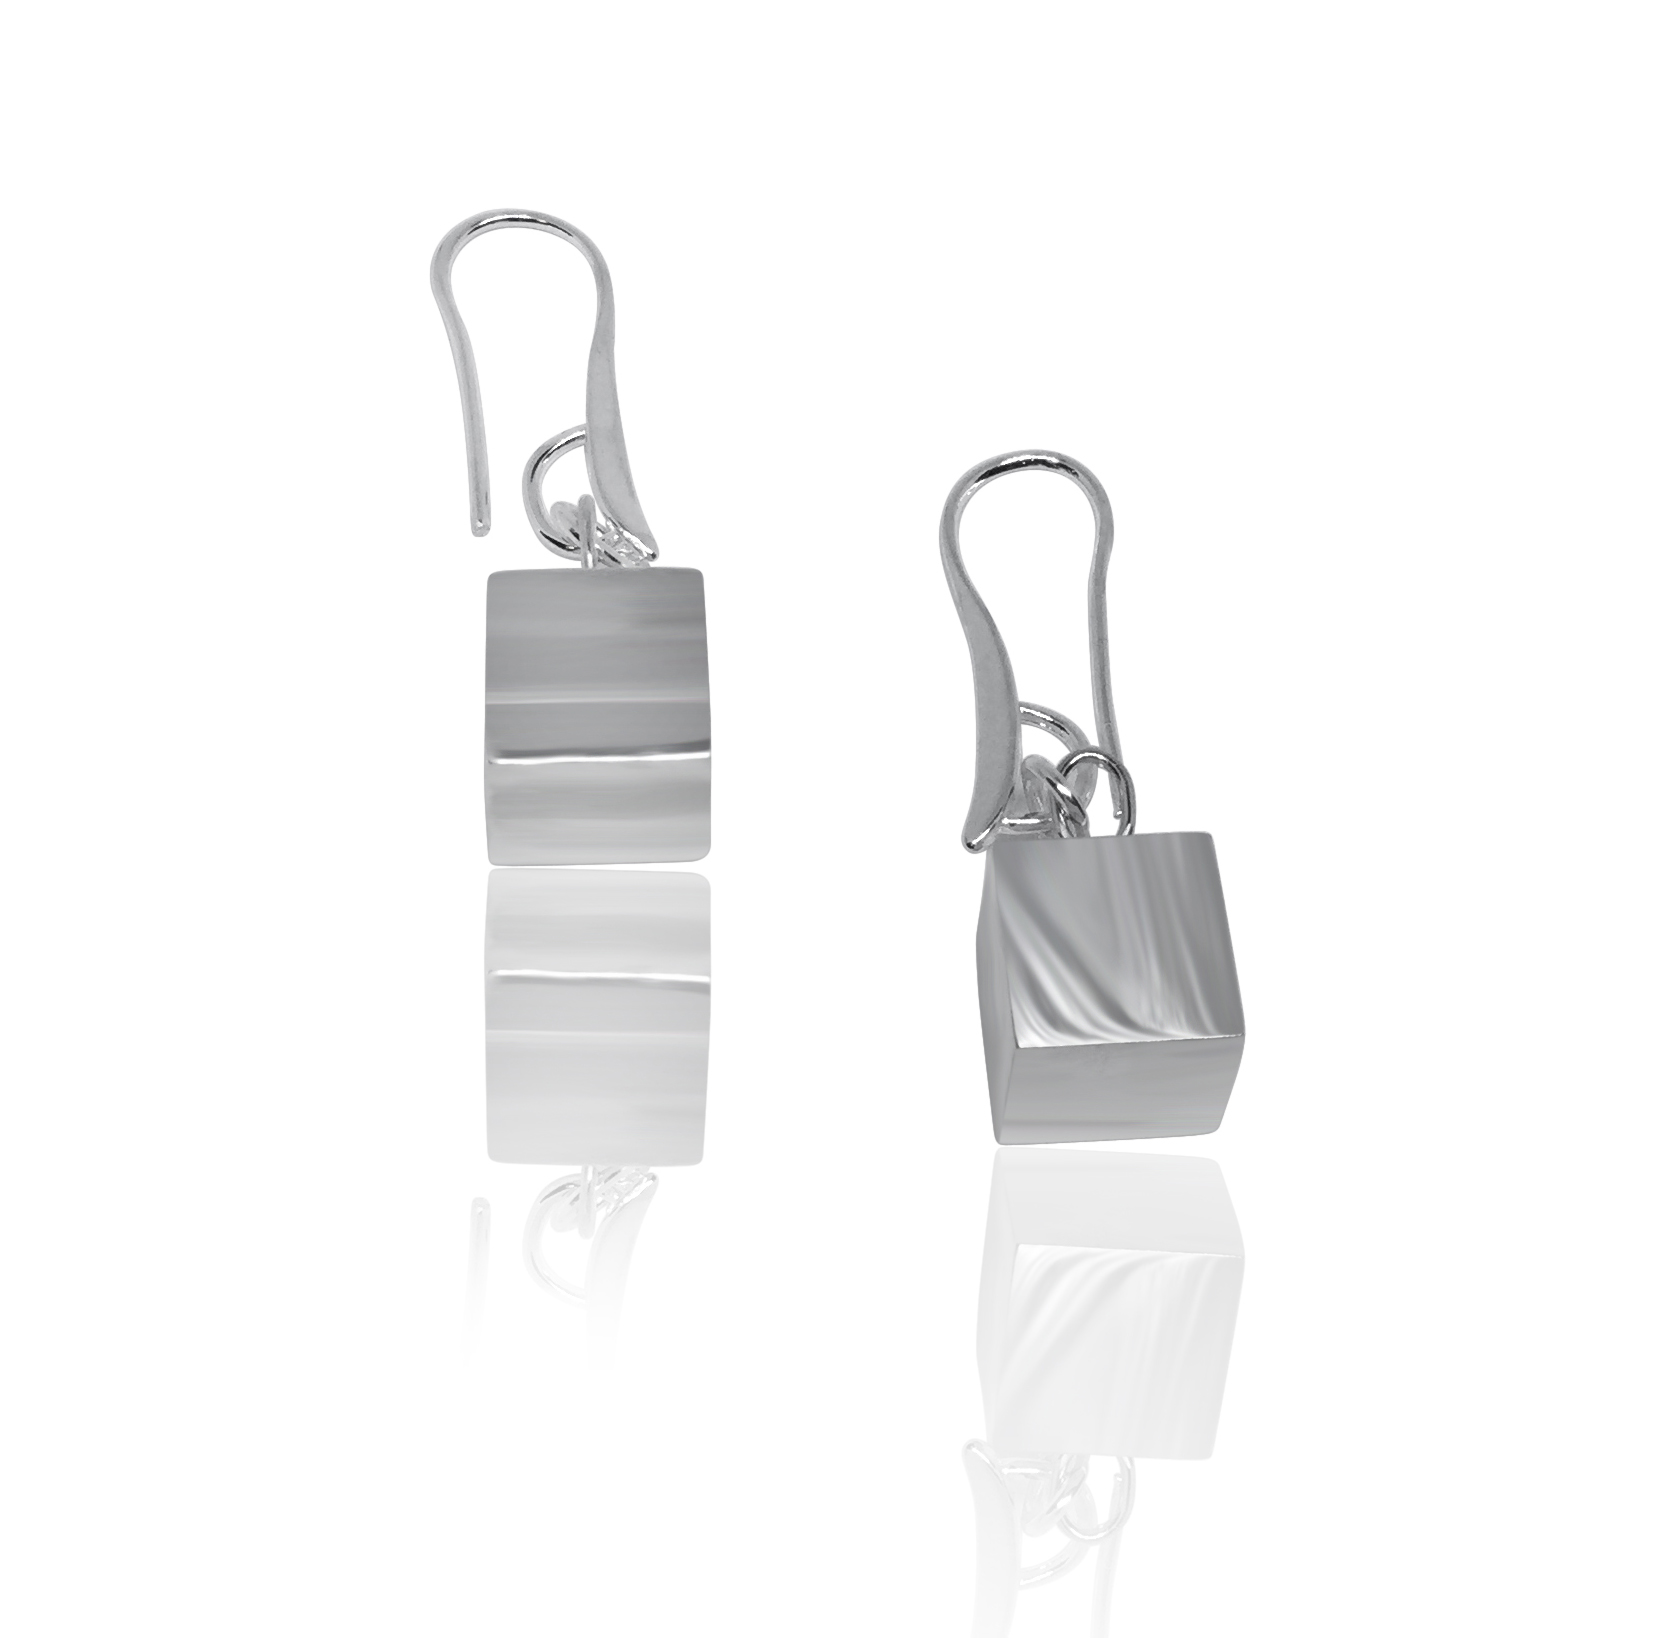 The Box silver earrings